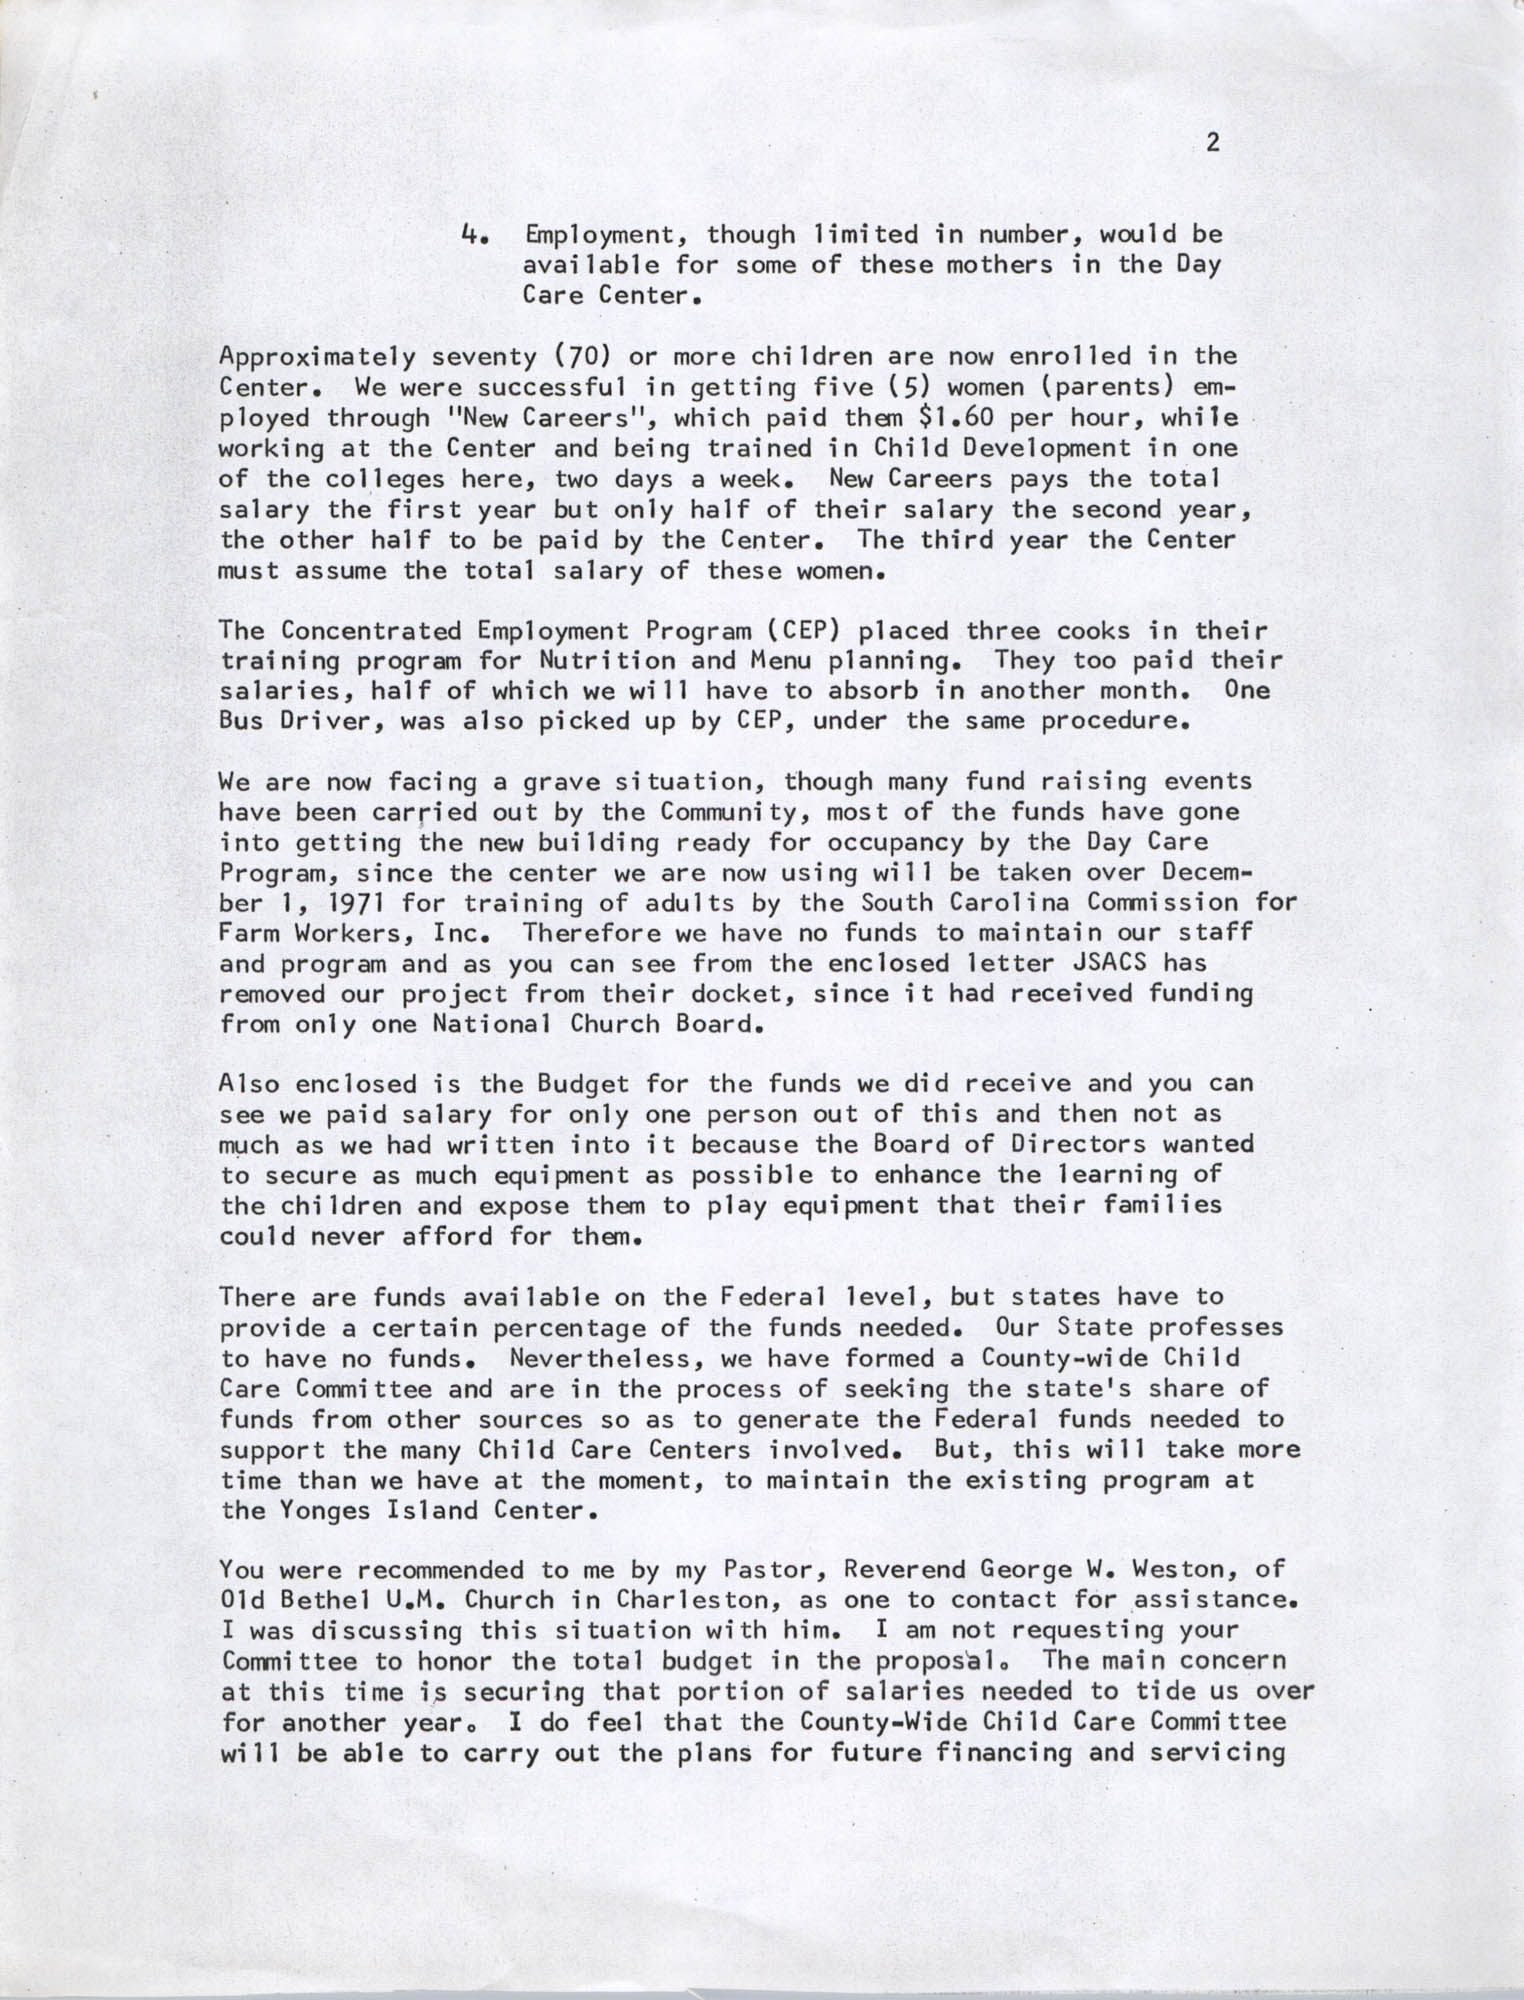 Letter from Bernice Robinson to DePriest Whyte, Sr., November 18, 1971, Page 2